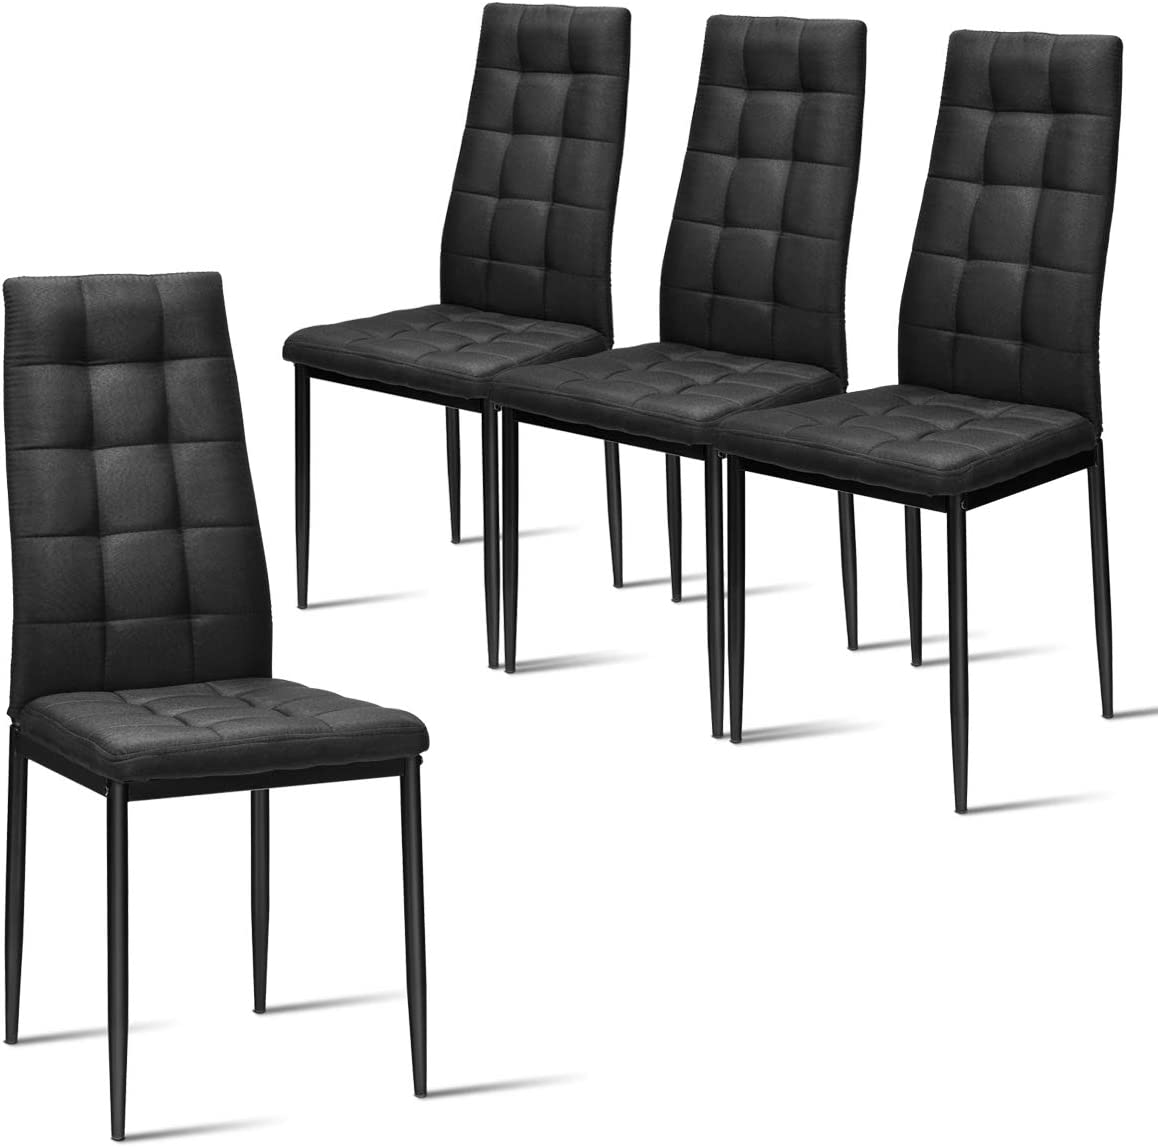 Giantex Set of 4 Fabric Dining Chairs Set, with Upholstered Cushion High Back, Powder Coated Metal Legs, Checked Pattern Seats, Household Home Kitchen Living Room Bedroom Black